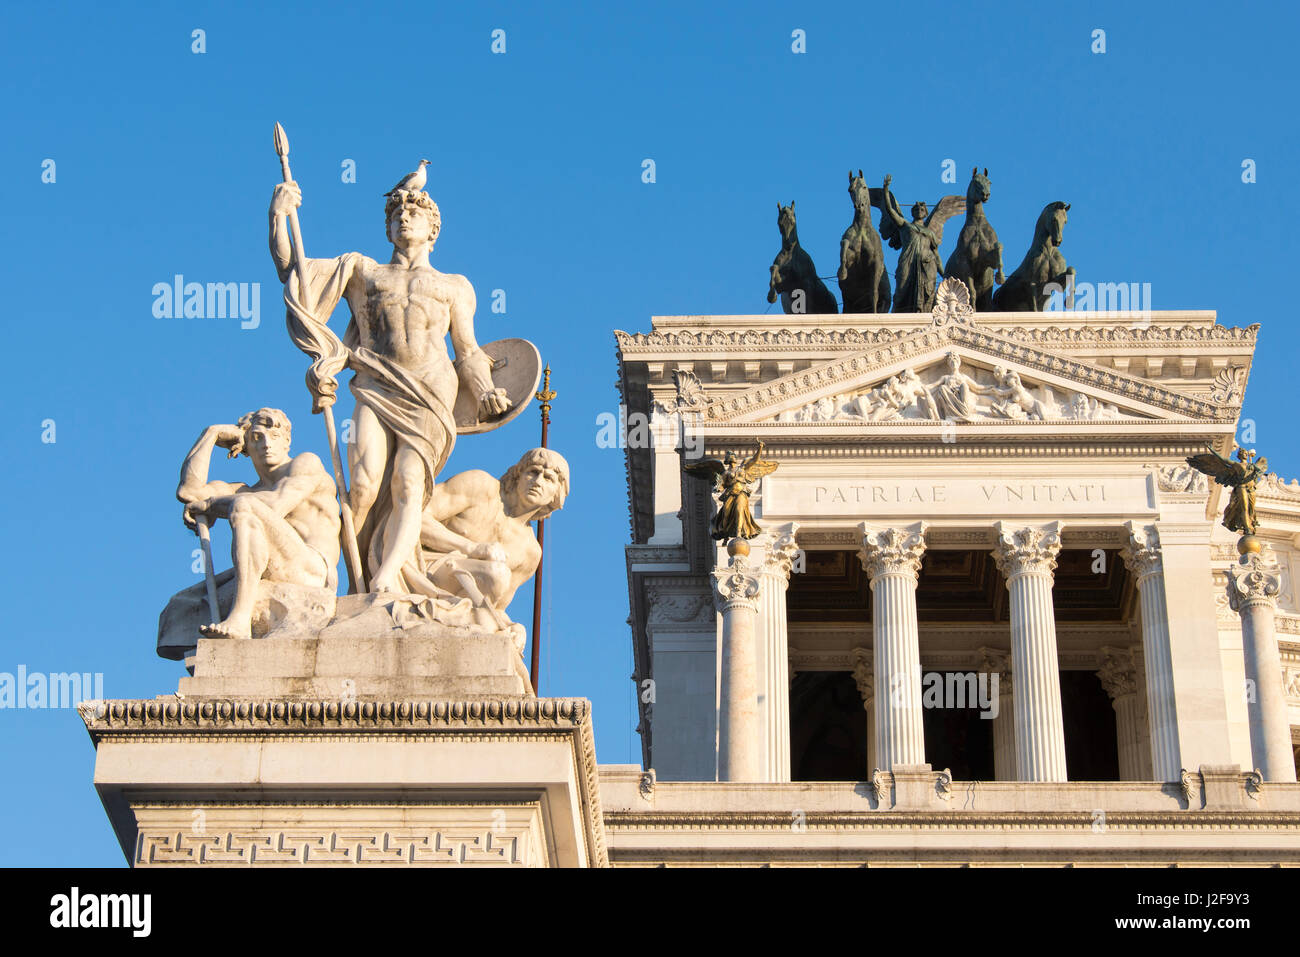 Europe, Italy, Rome. Altar of the Fatherland, Il Vittoriani. Commemorates unification of Italy. Sometimes referred - Stock Image